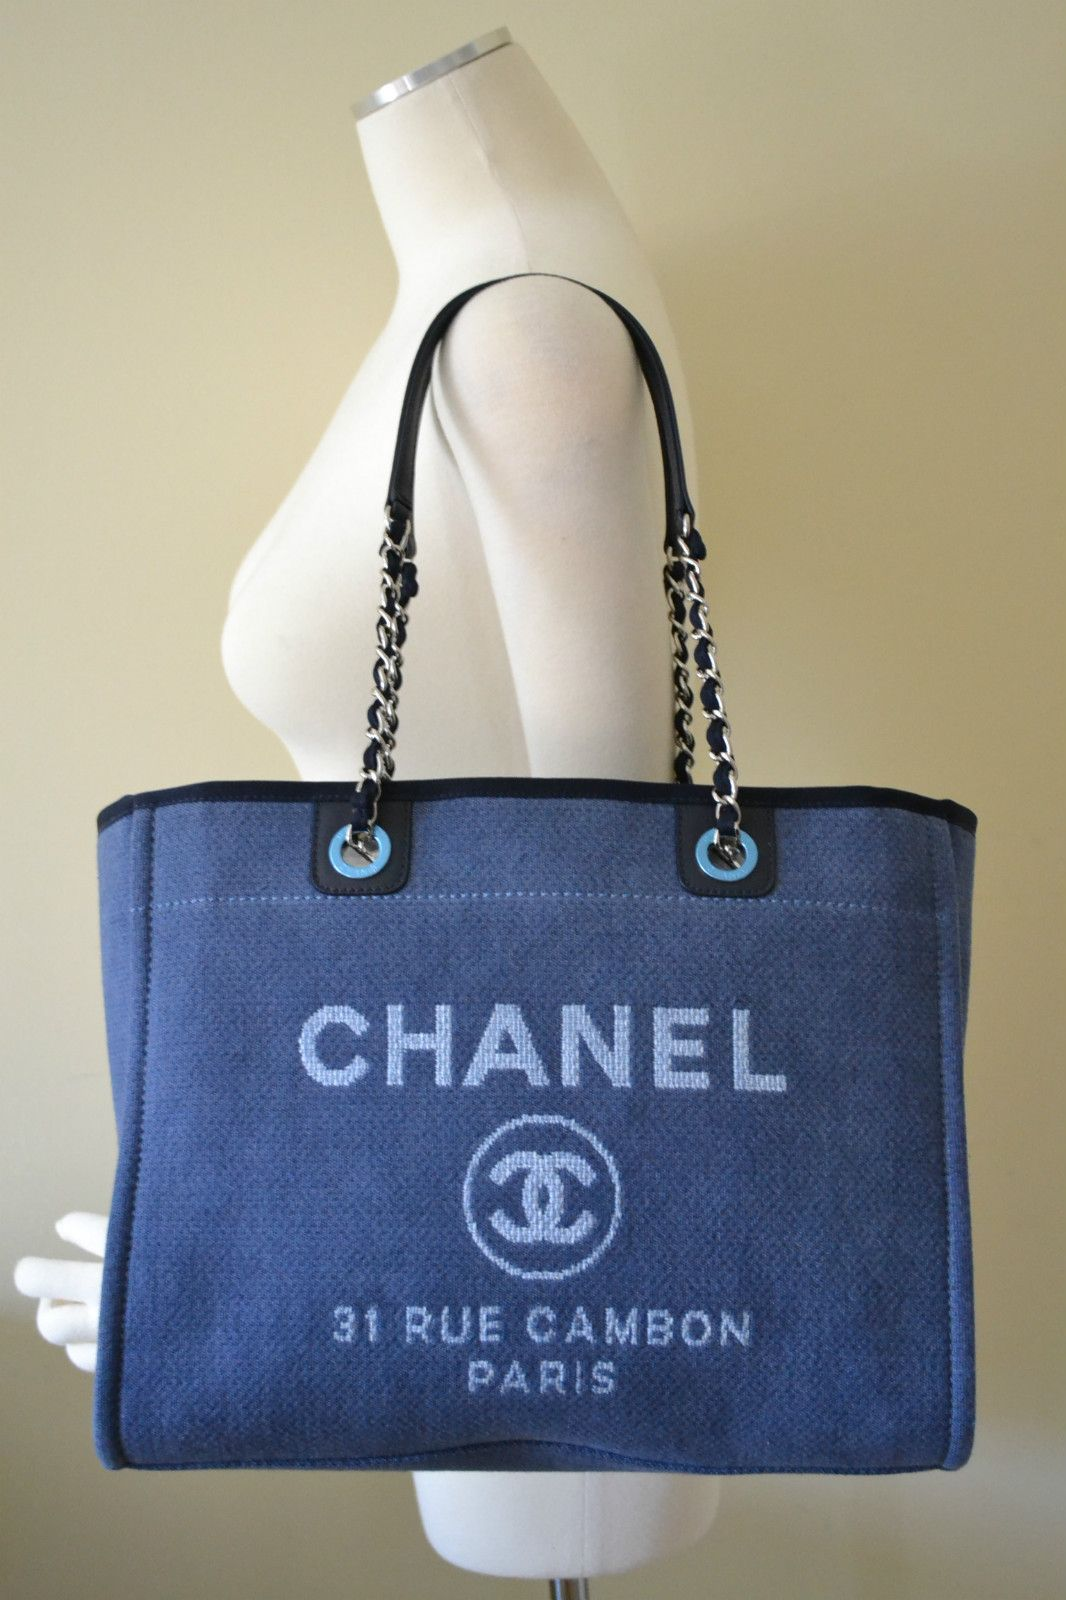 188596ef2fe6 CHANEL NWT 2012 Coco Deauville Denim Blue Medium Chain Tote Bag New Purse  Summer $2500 @LifeProof #LifeProofBlue